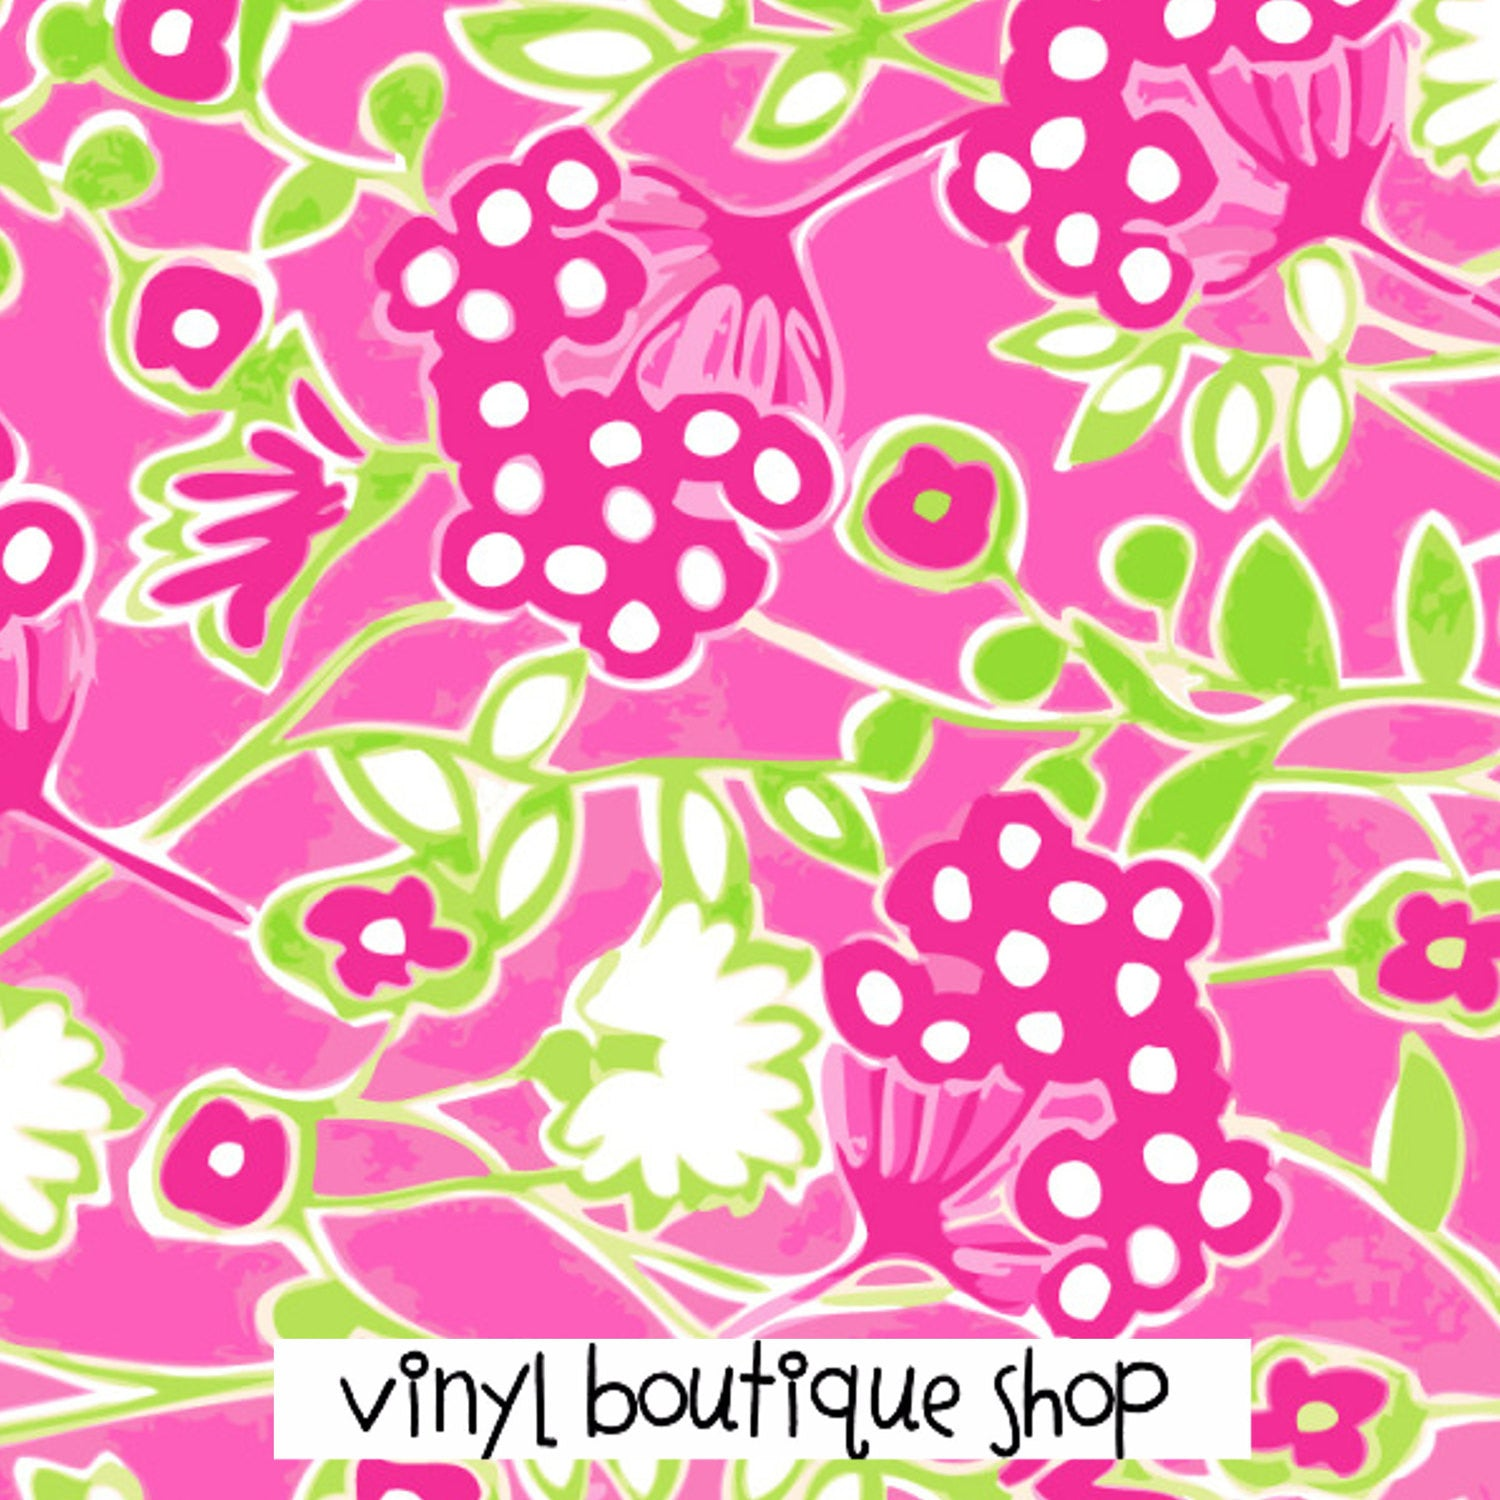 Pink Lilly Inspired Printed Patterned Craft Vinyl - Vinyl Boutique Shop